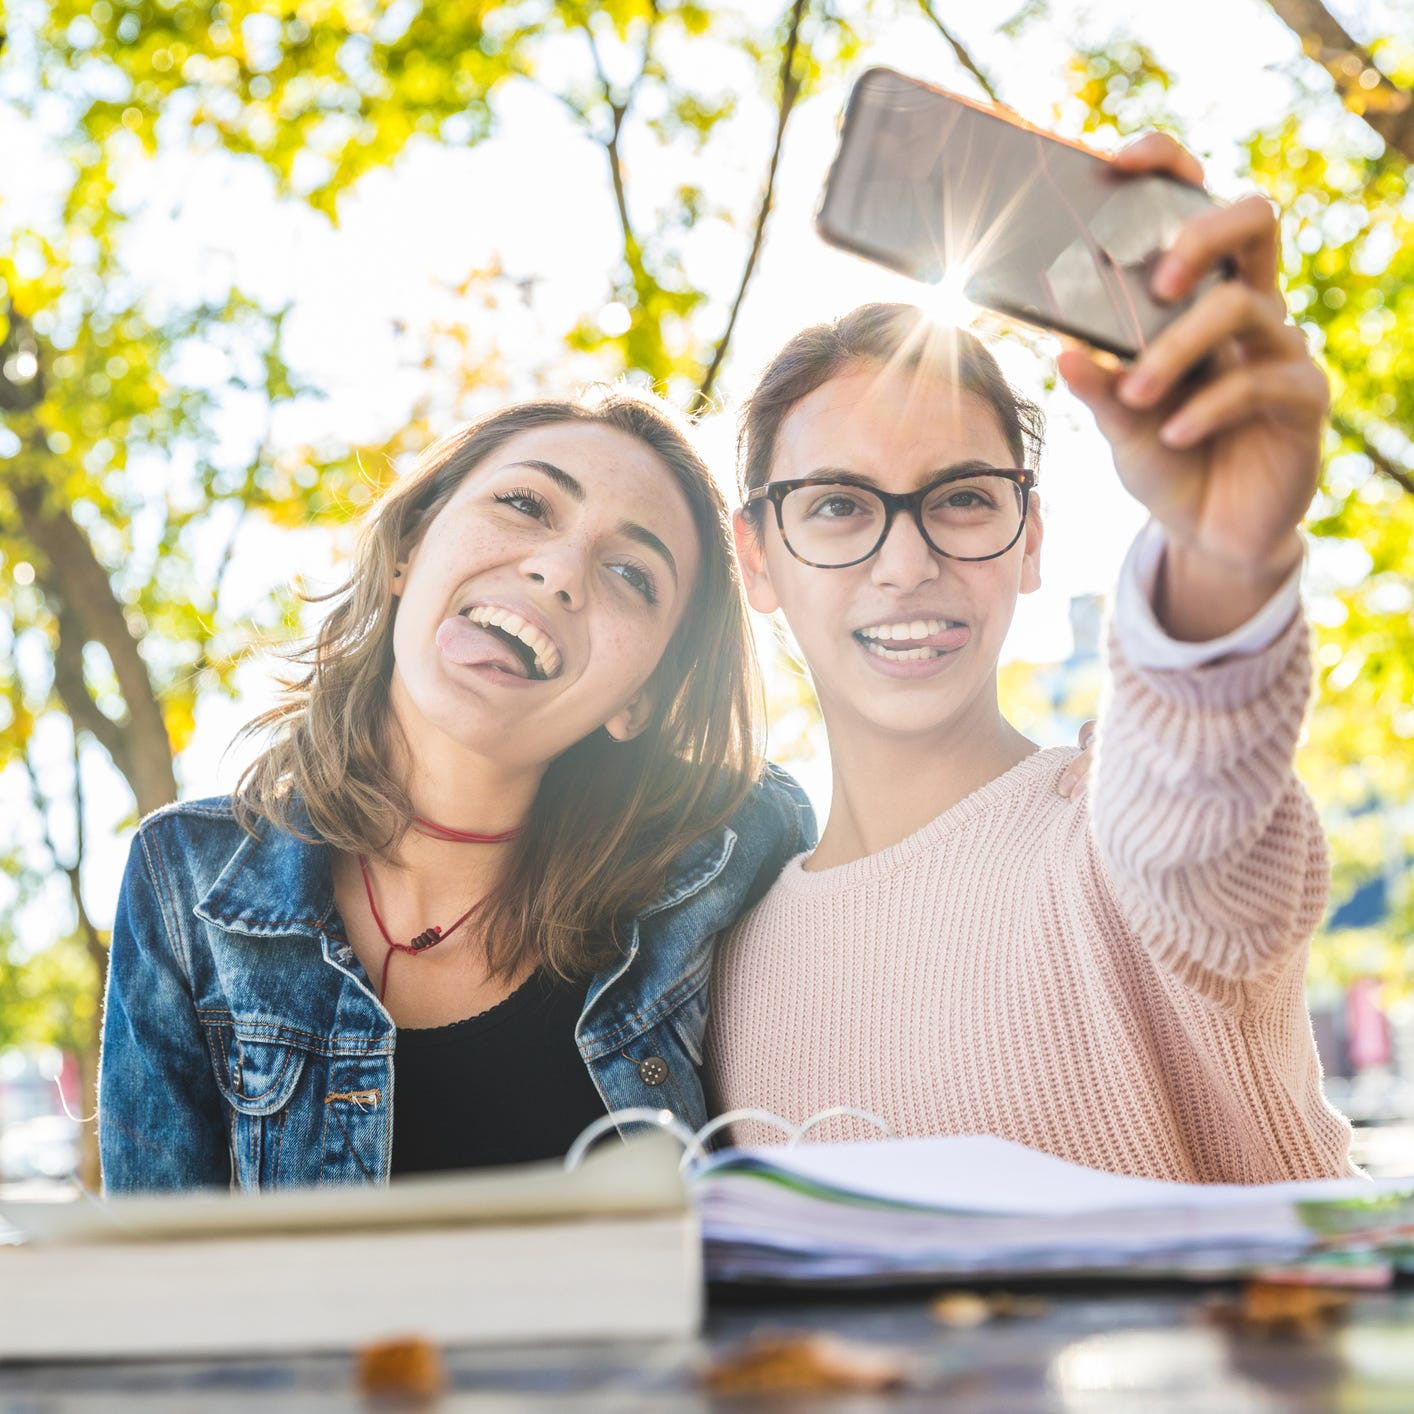 Girls studying together at park and taking a funny selfie. Happy best friends with books having fun while studying. Friendship and lifestyle concepts.